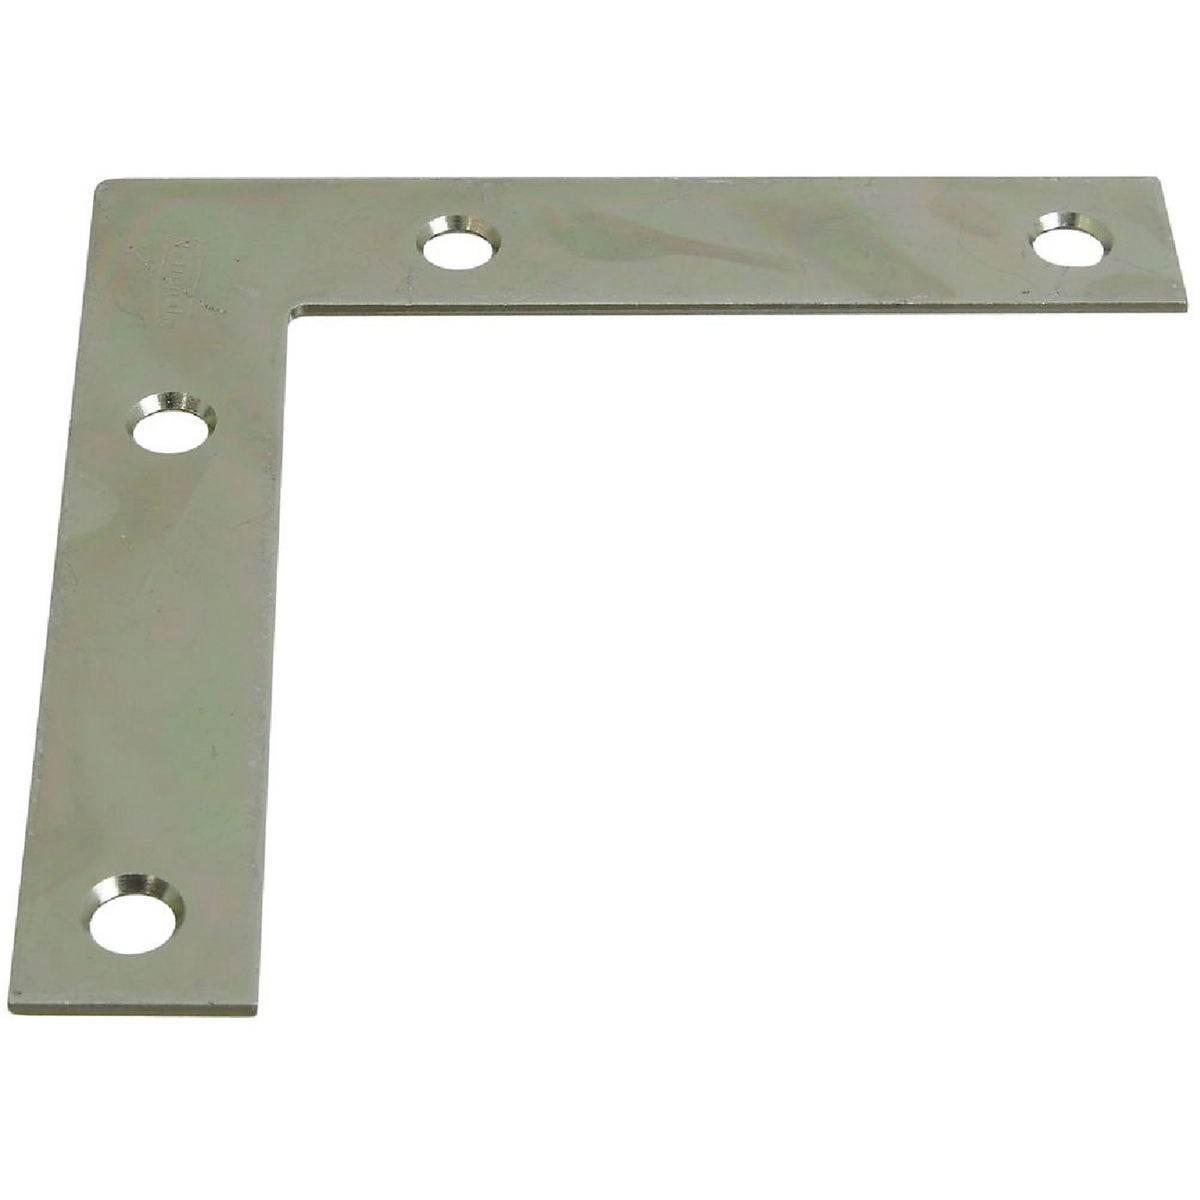 4X3/4 ZINC FLAT IRON - N266569 by National Mfg Co